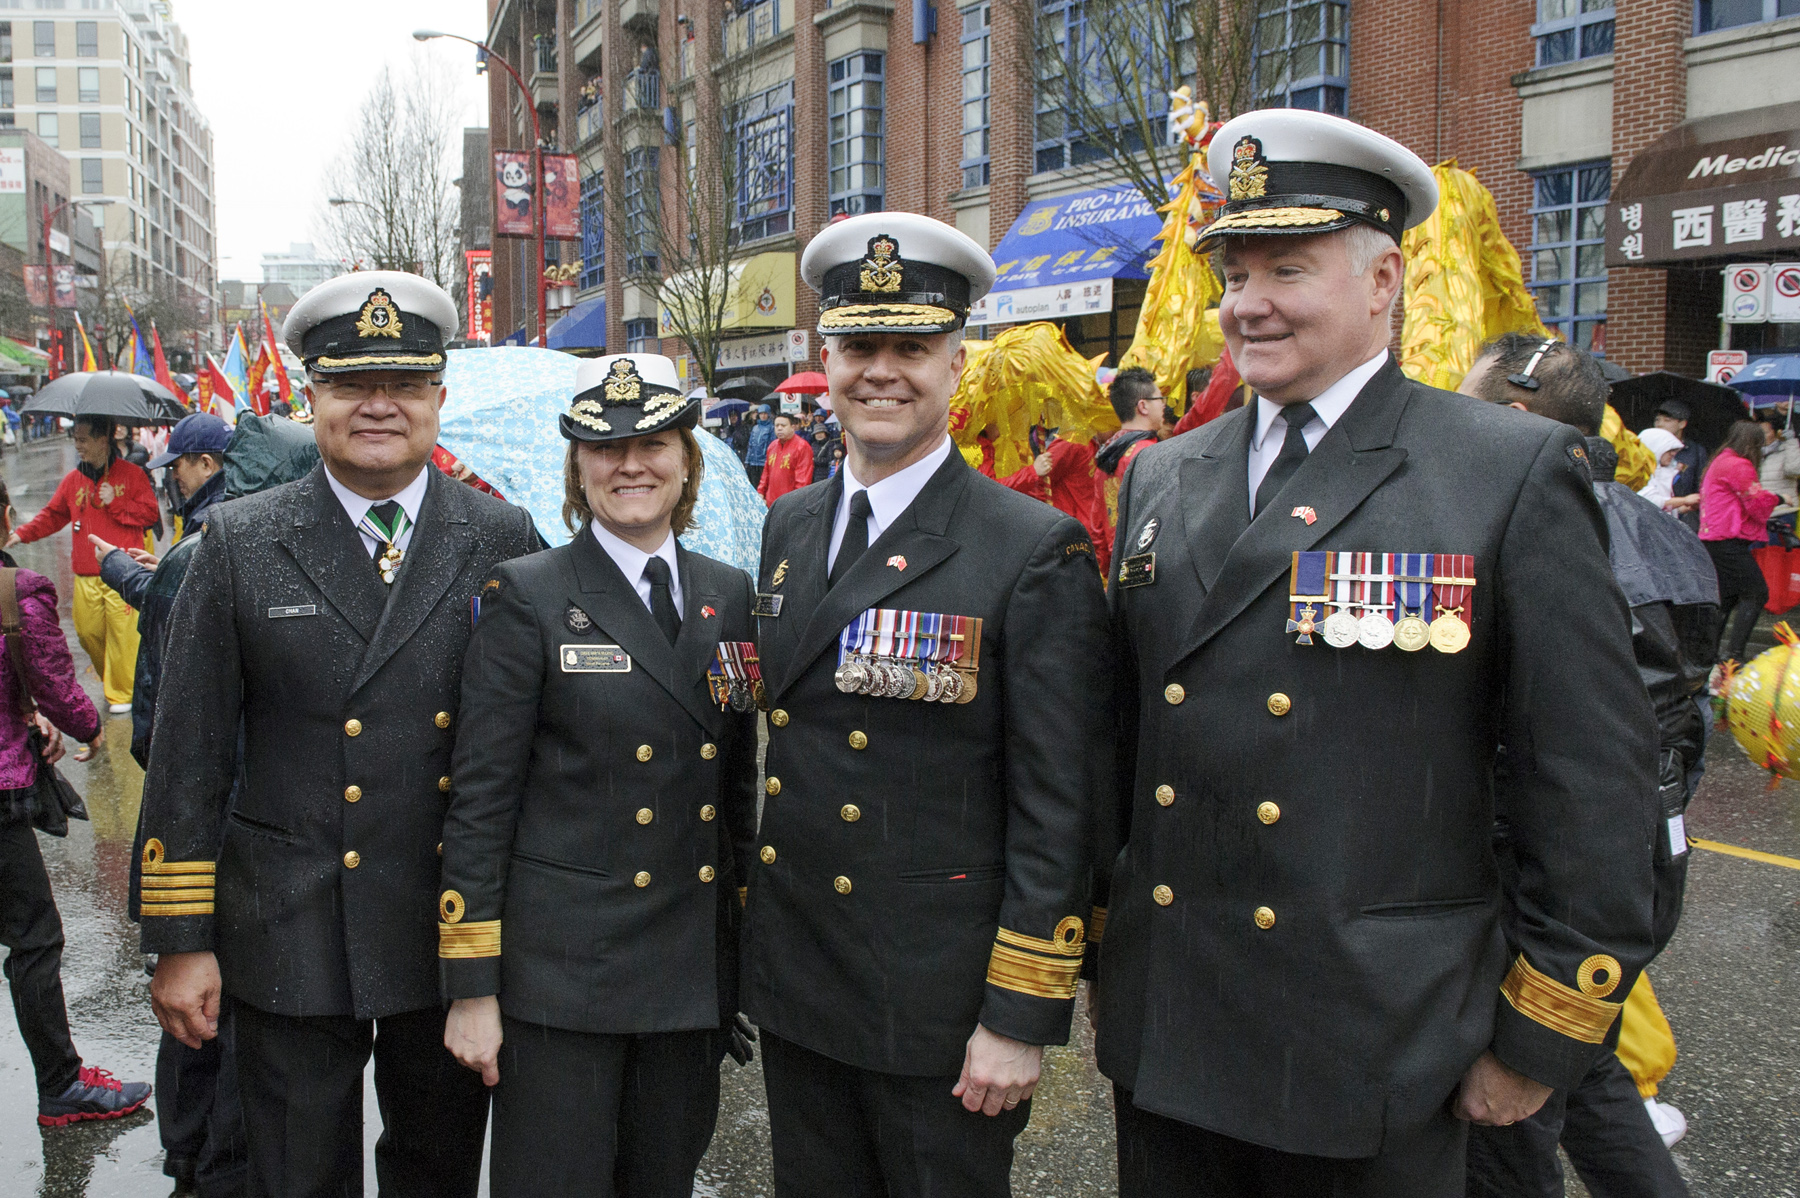 From left: Honorary Captain (Navy) Tung Chan, Commodore Marta Mulkins, Rear-Admiral Art McDonald and Commodore Jeffrey Zwick pose together at the Chinese New Year parade in Vancouver.